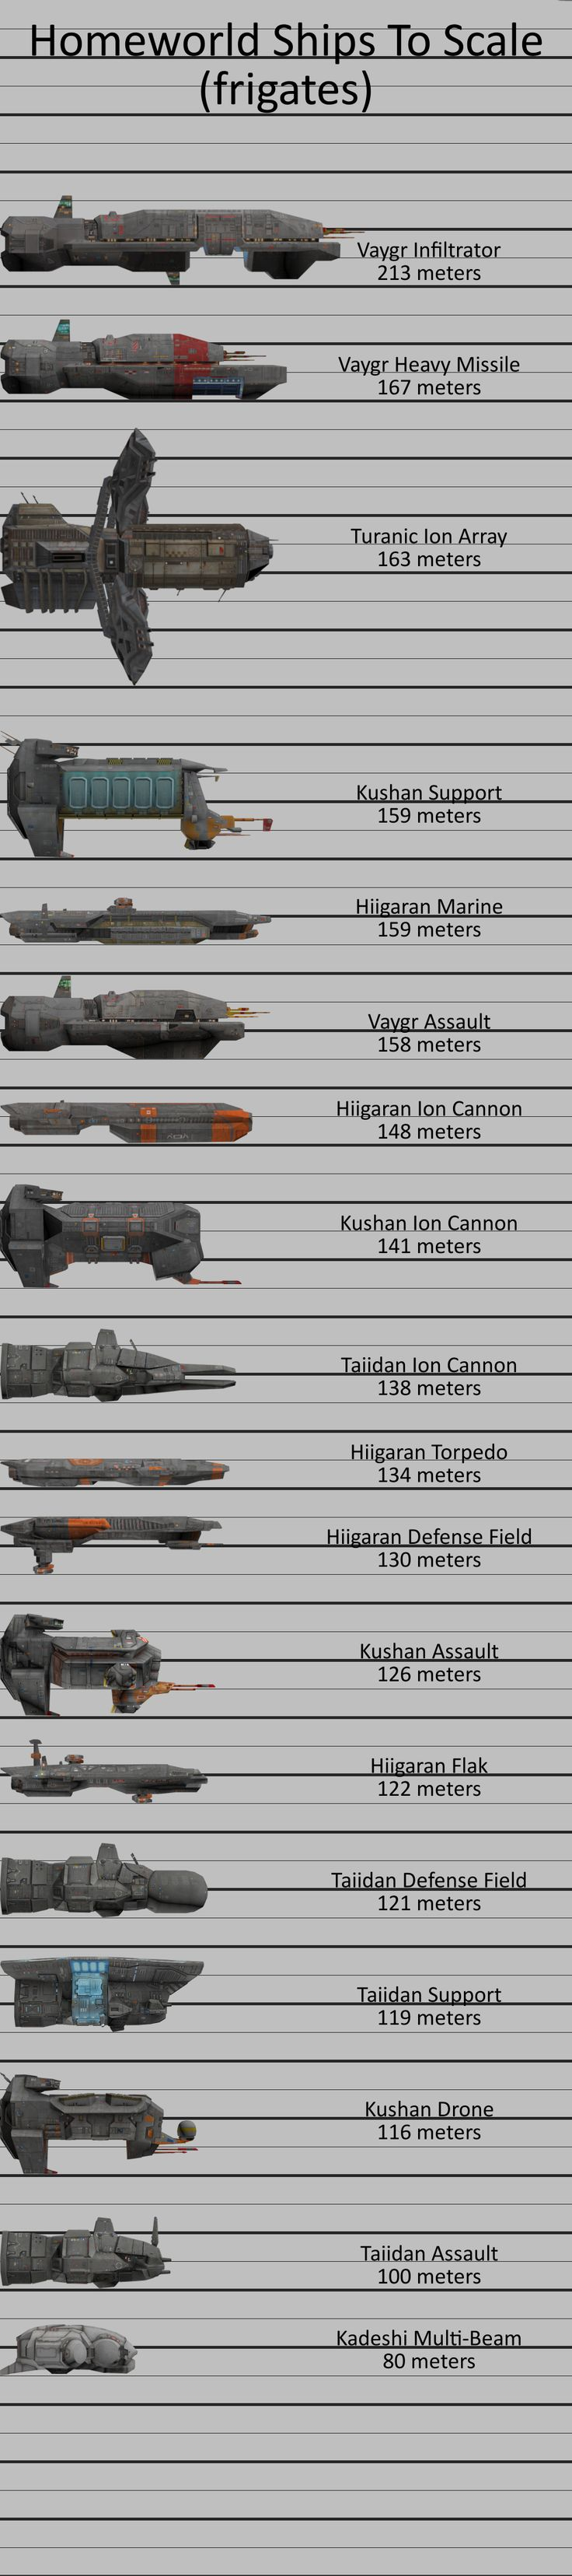 Homeworld Ships To Scale (frigates) by doberman211